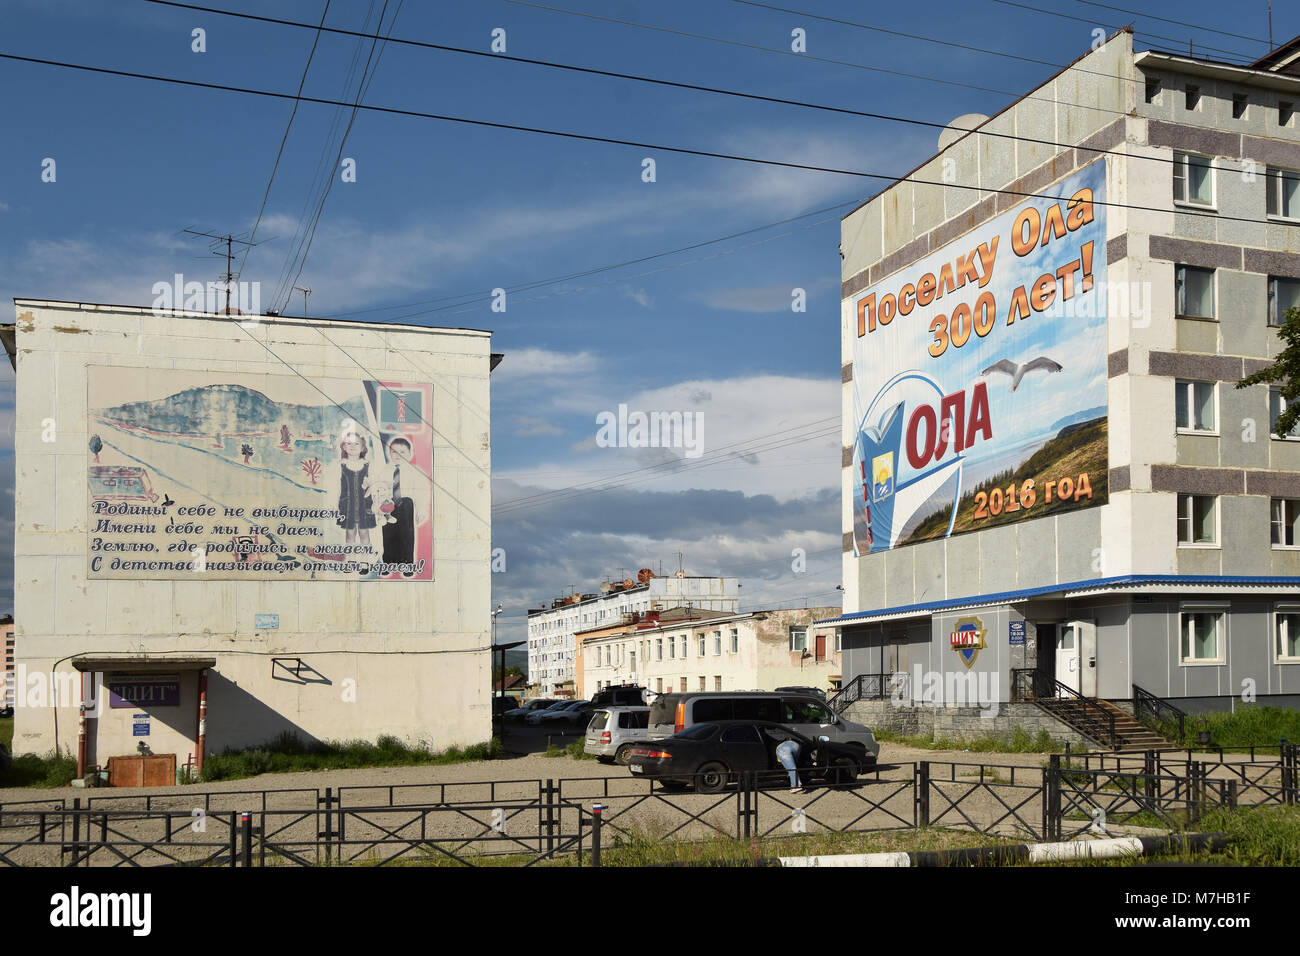 Living buildings in the small city of Ola, east of the capitale city of the Kolyma, Magadan. - Stock Image